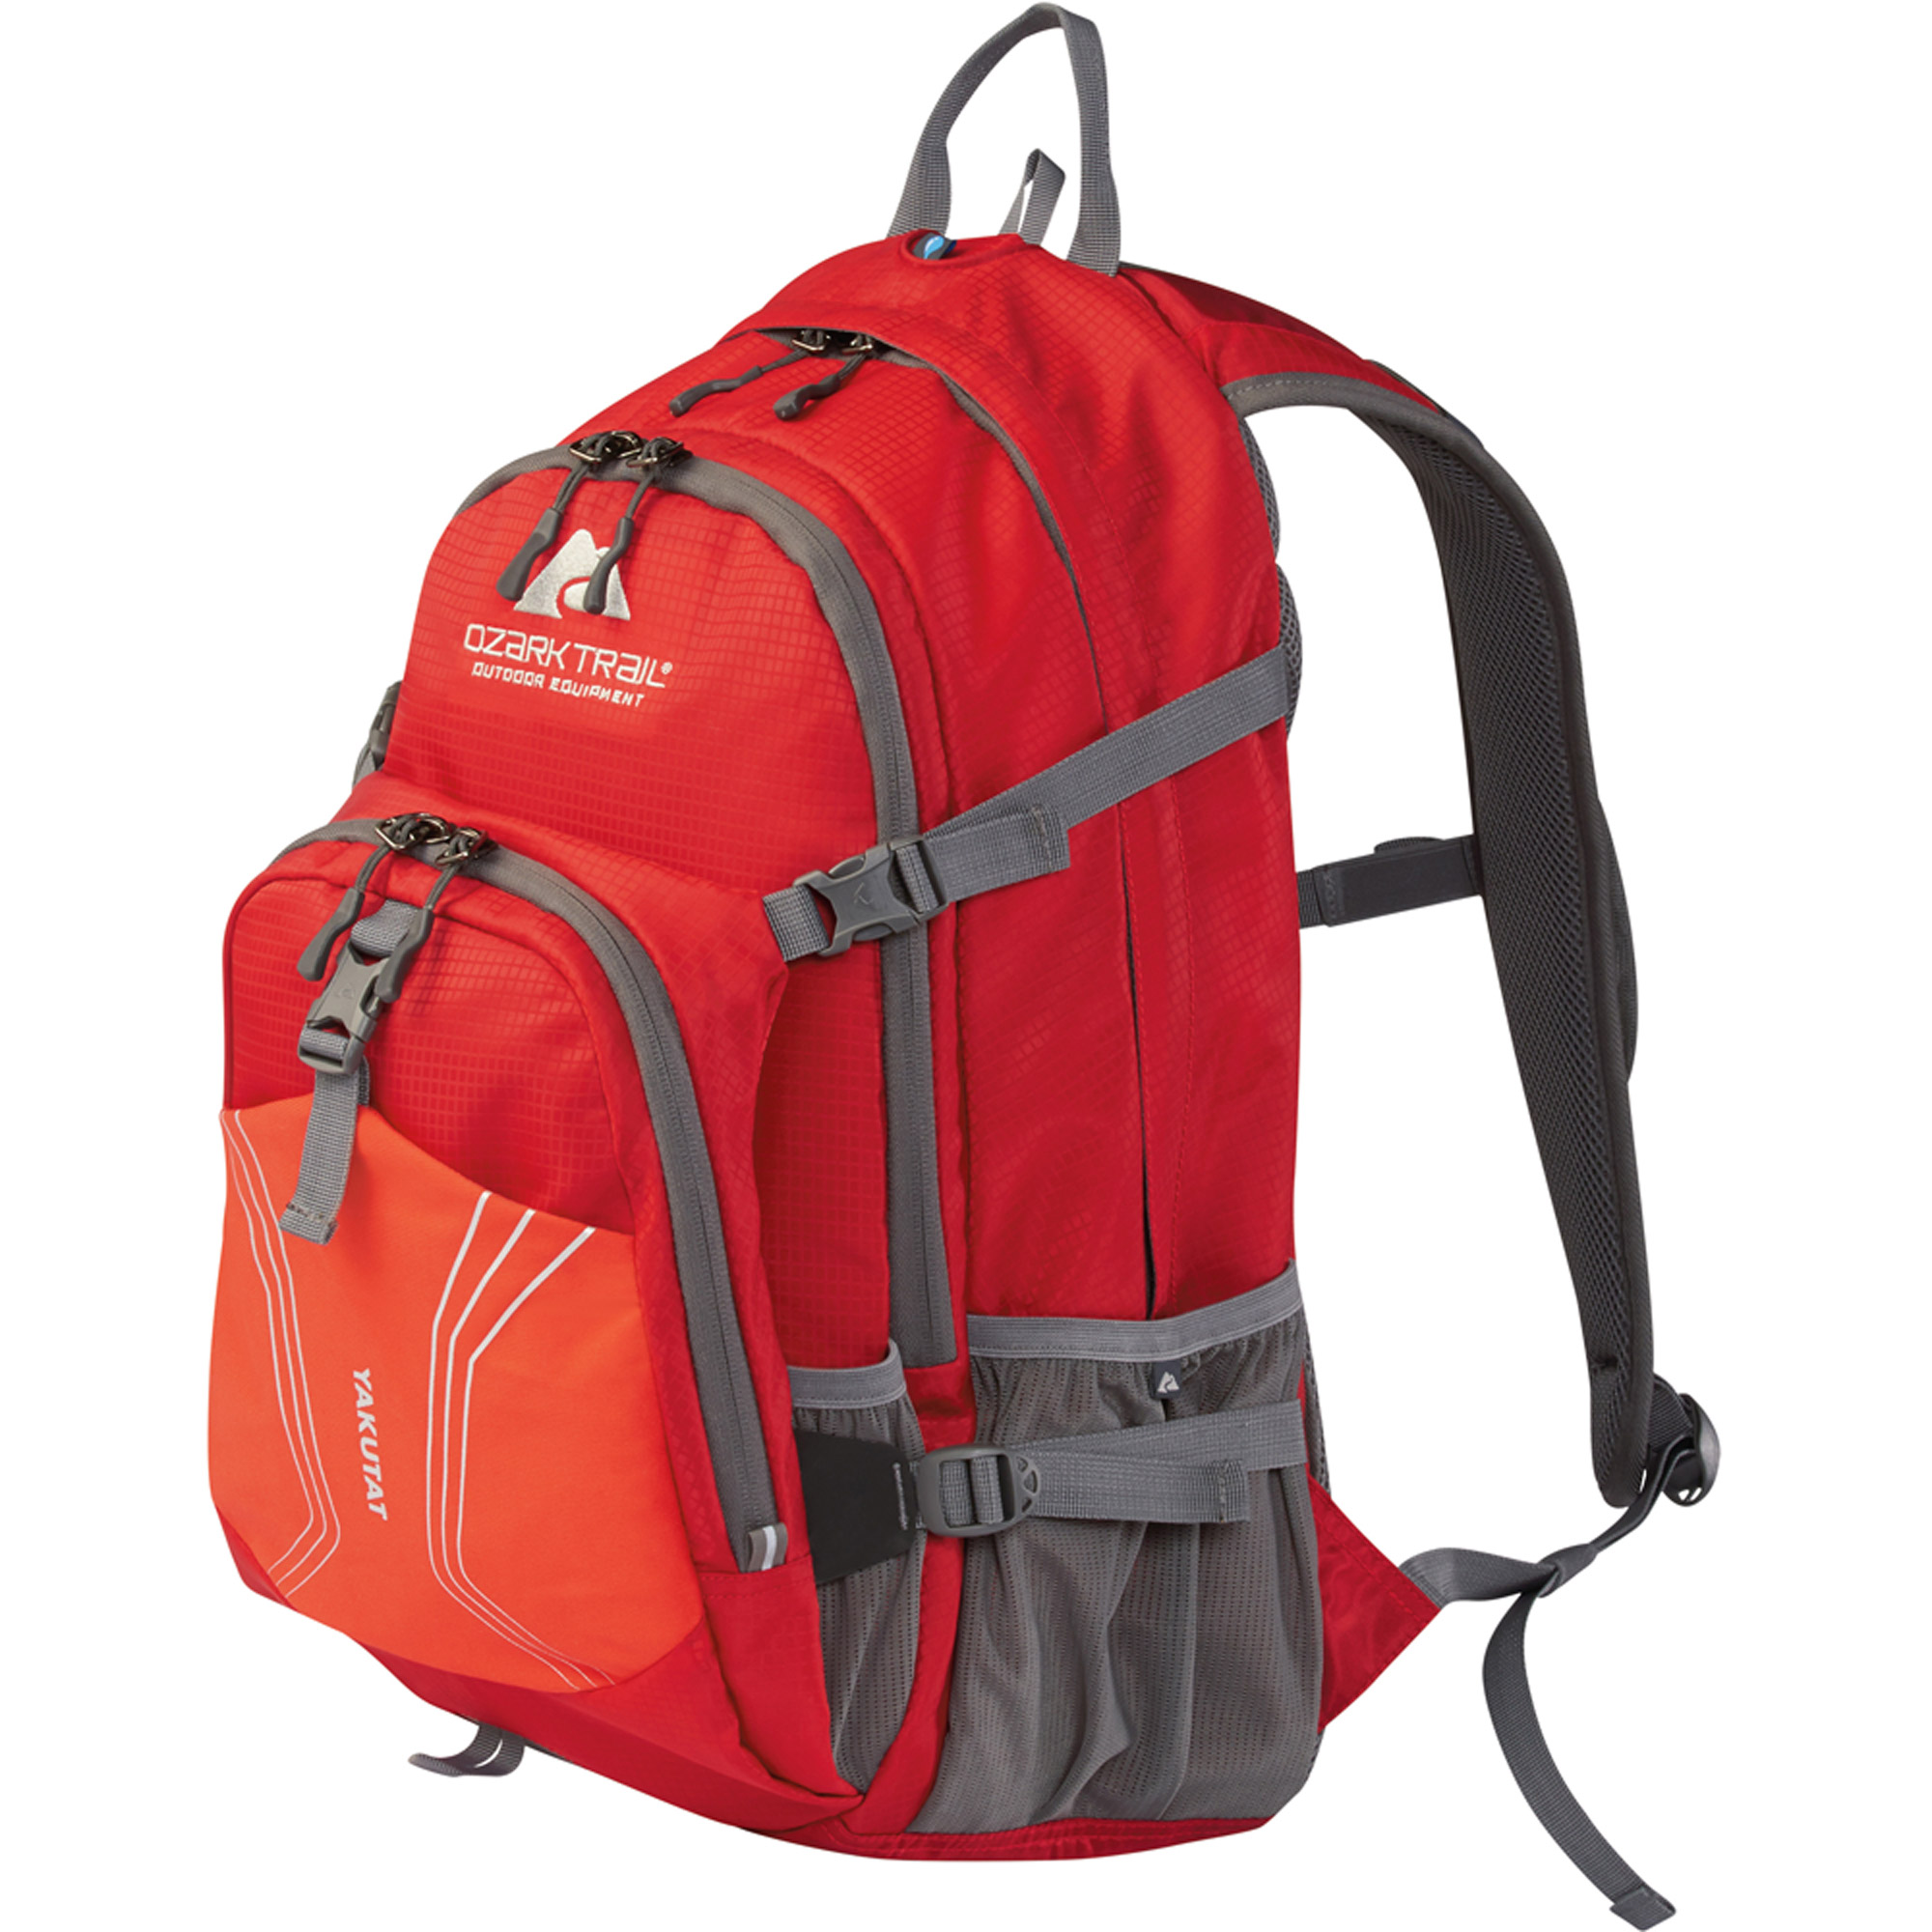 OZARK TRAIL 25L Yakutat Backpack Hydration compatible outdoor adventure hiking backpacking camping